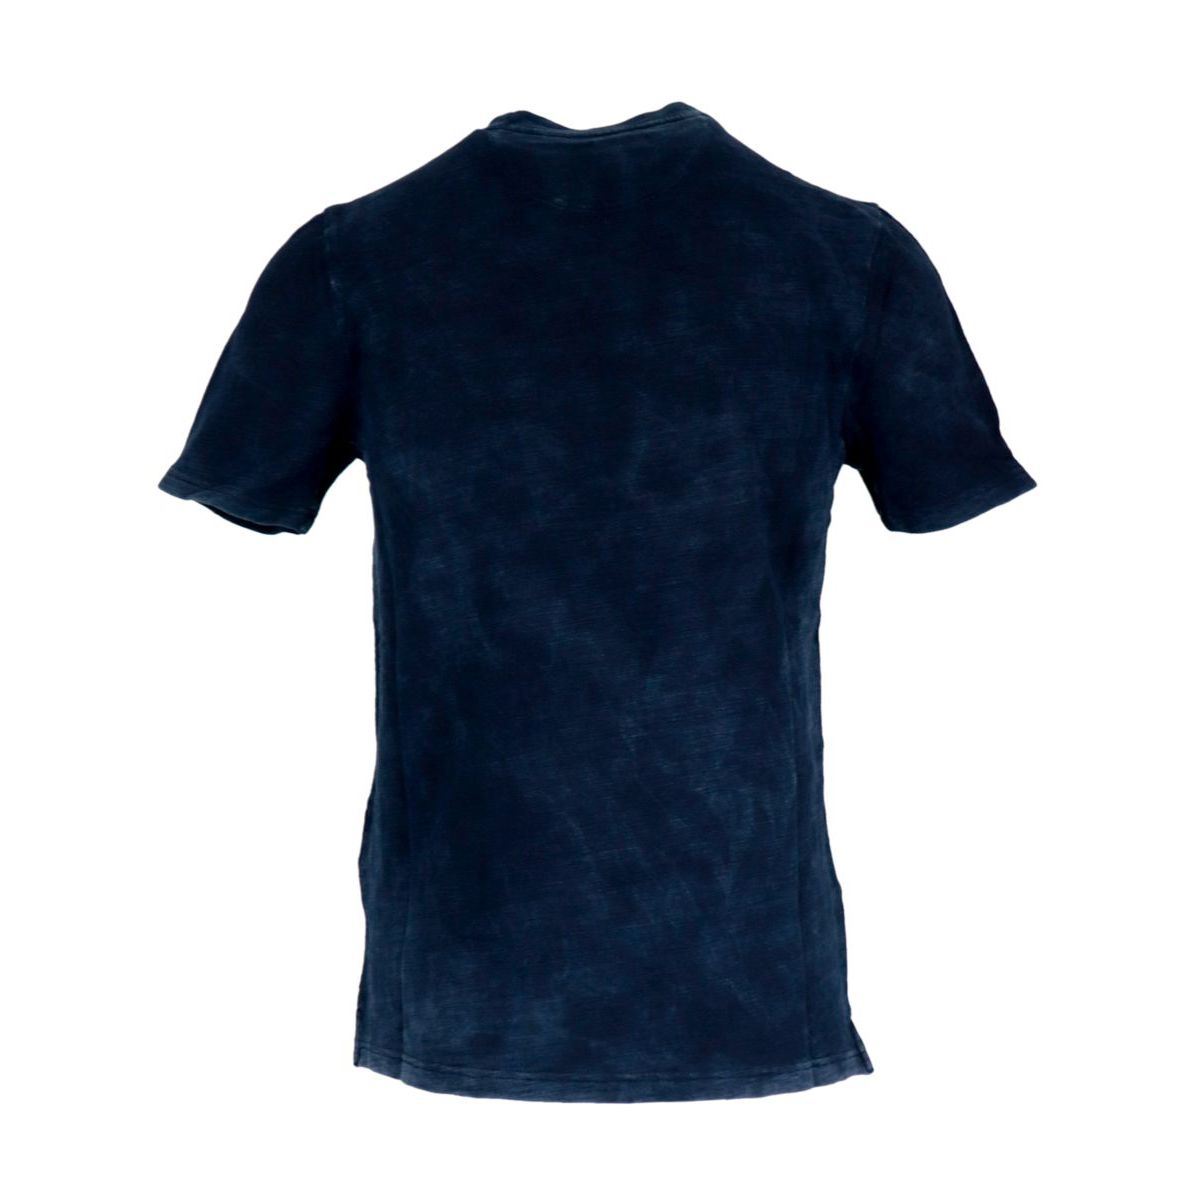 Crew-neck t-shirt in washed effect cotton Navy Alpha Studio